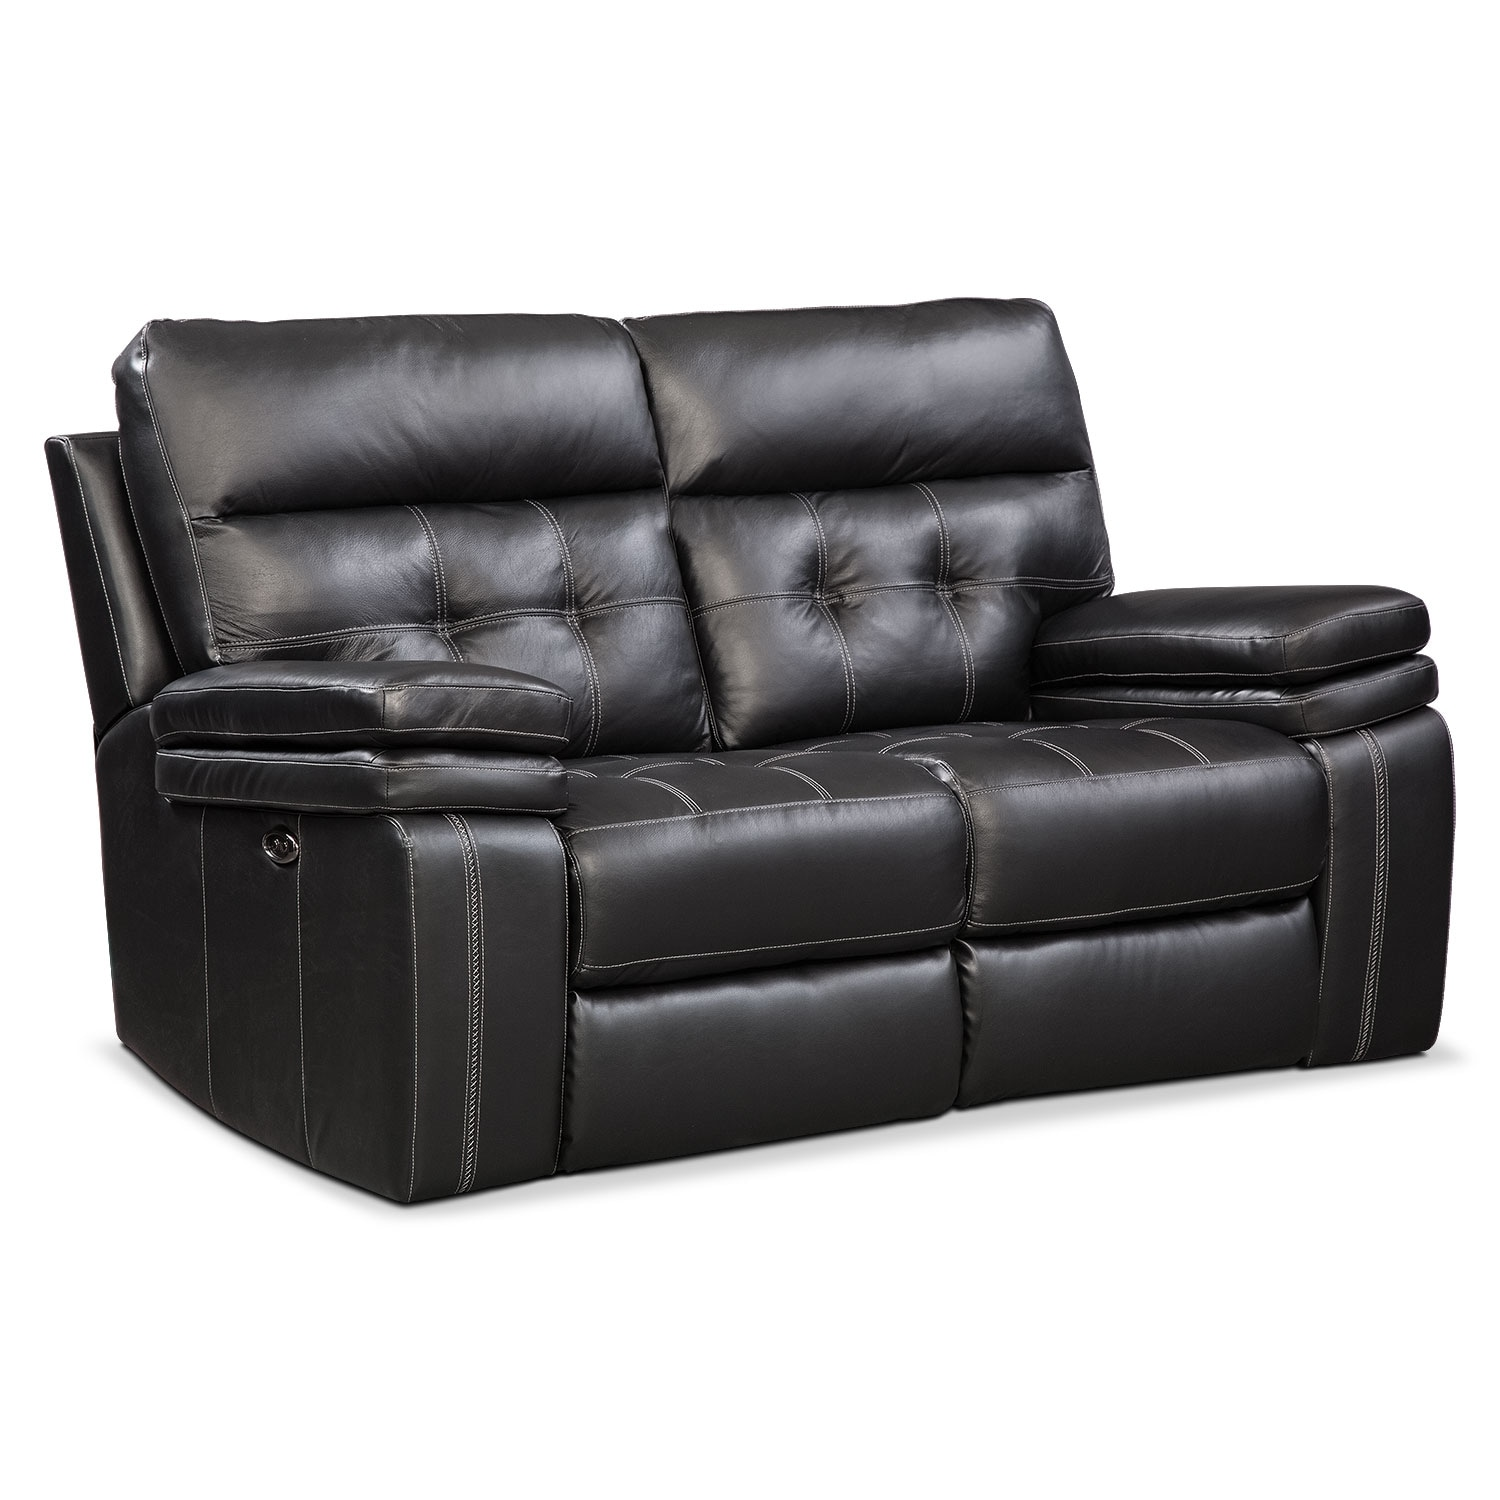 Brisco Power Reclining Sofa Reclining Loveseat And Glider Recliner Set Black Value City